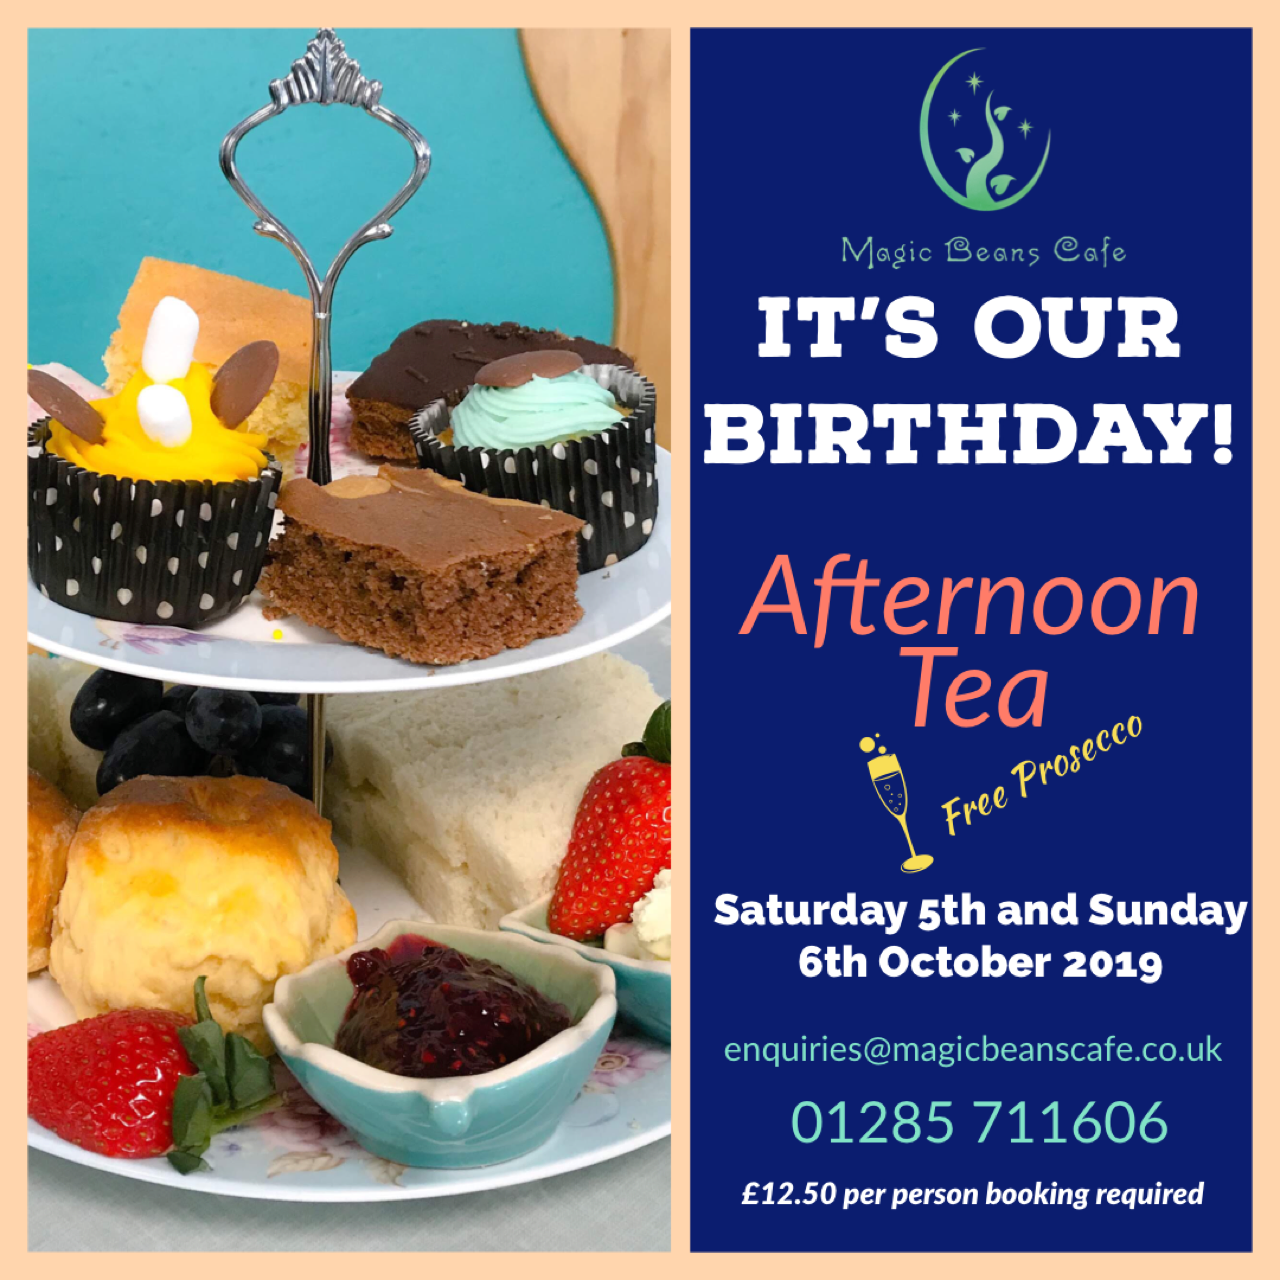 It's our birthday! Afternoon tea with free prosecco on Saturday 5th and Sunday 6th October for £12.50 per person